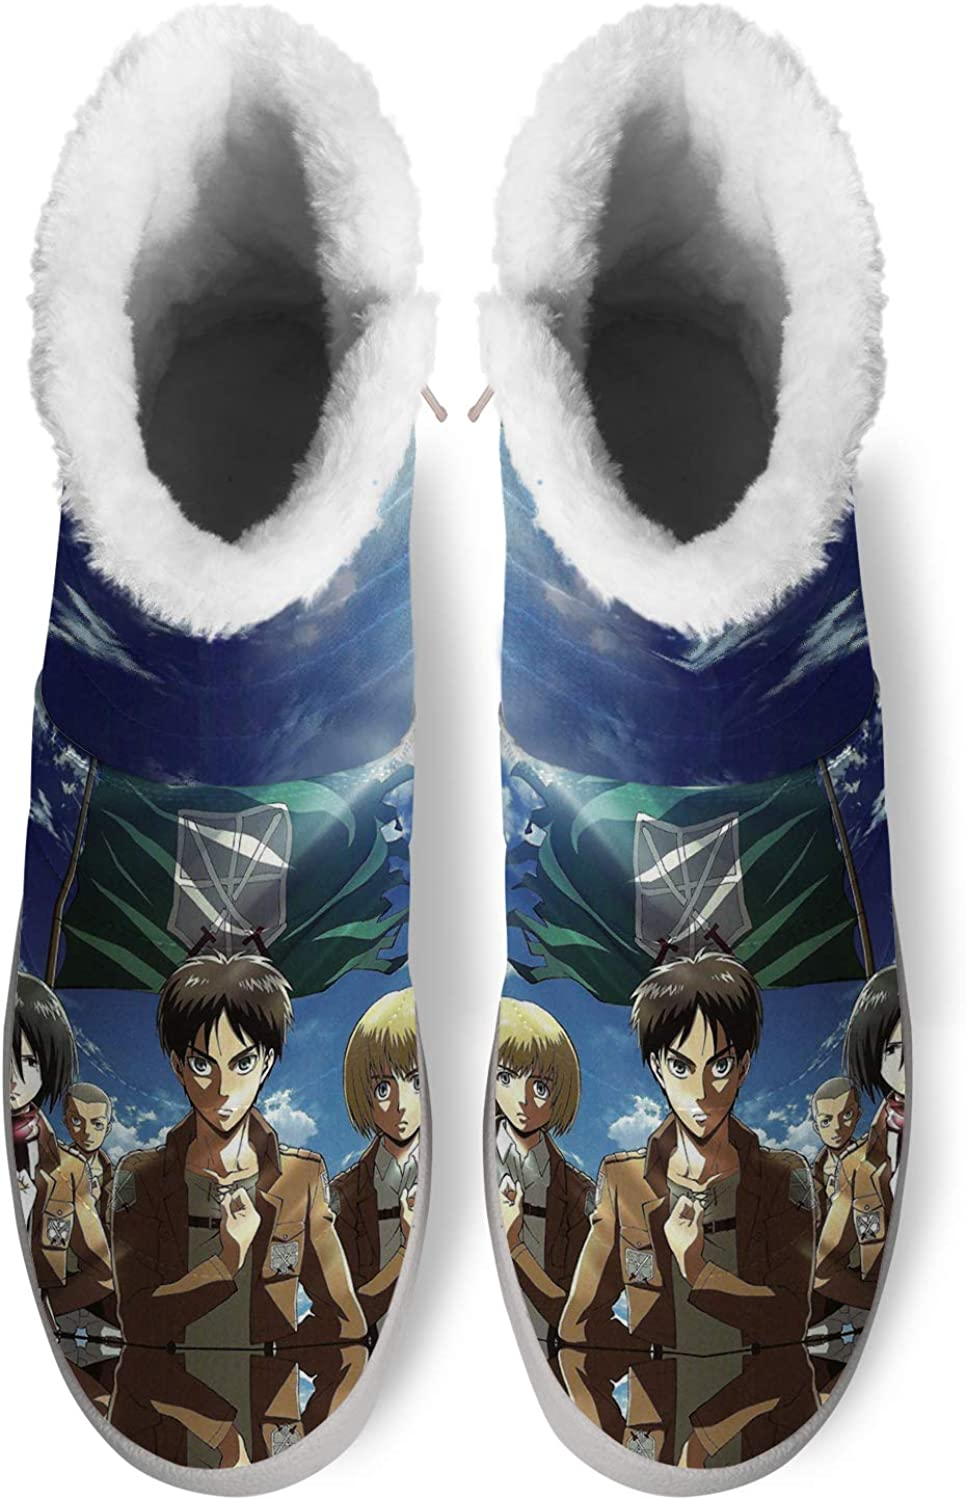 Japanese Anime Snow Boots for Men Women New Free Shipping High material Cosplay B 3D Print